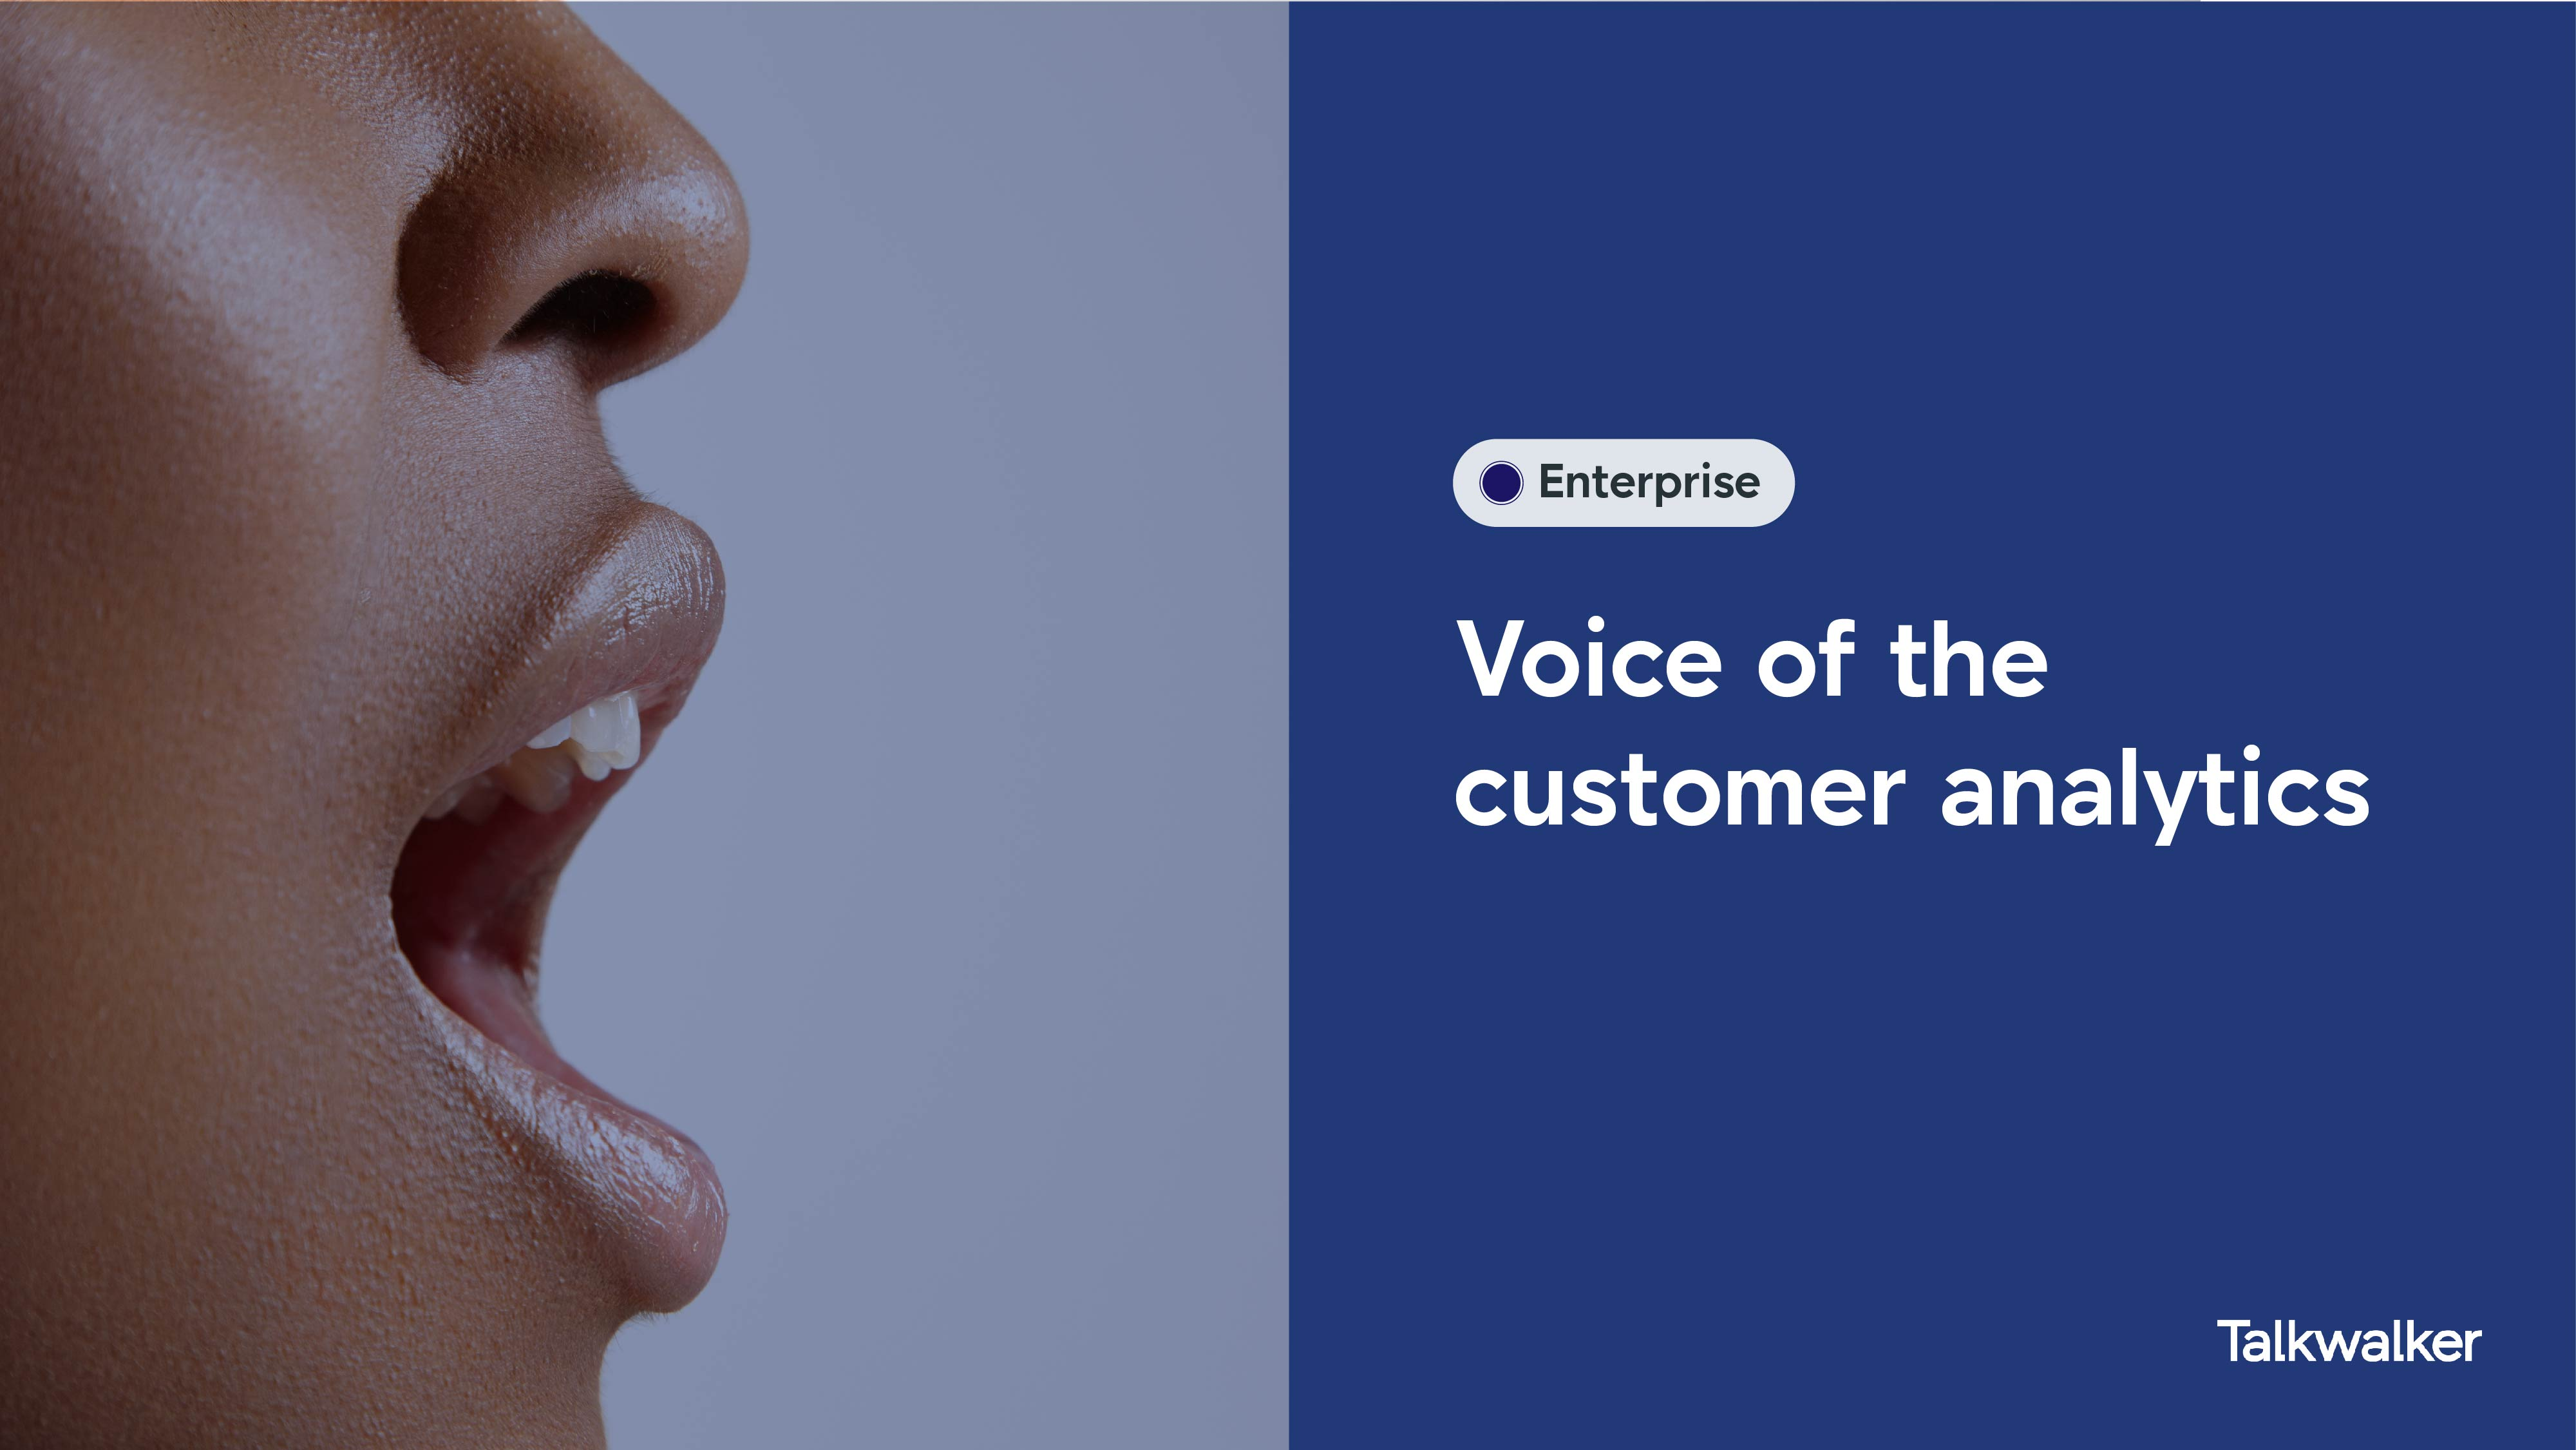 Voice of the customer analytics - Image shows a person in profile, with their mouth open, ready to speak.